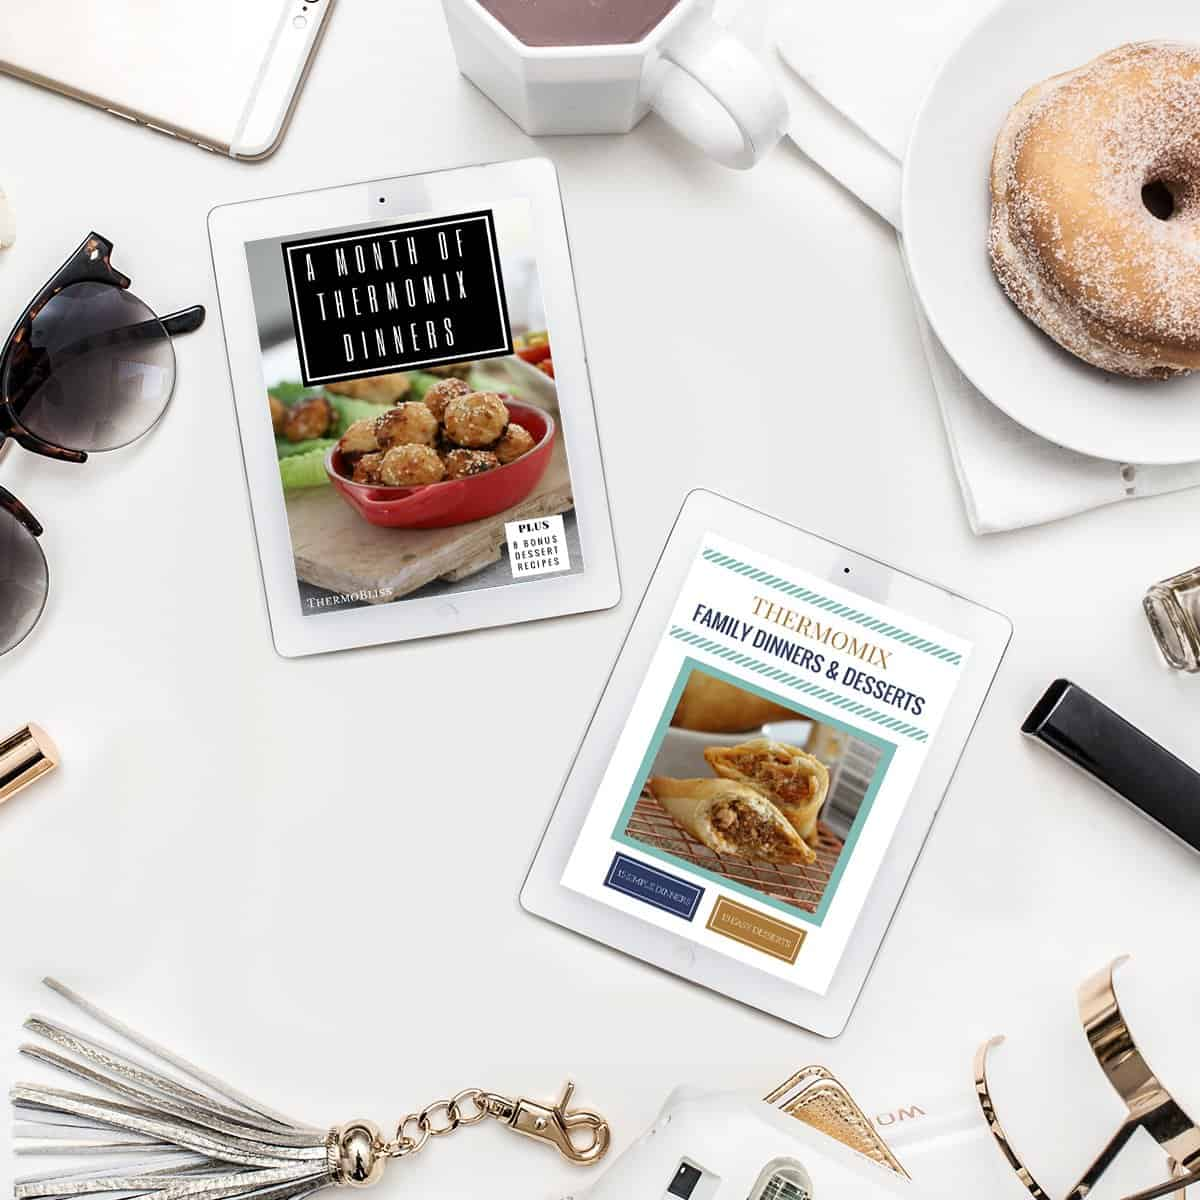 Two recipe books on a bench - Thermobliss Family Dinners Bundle